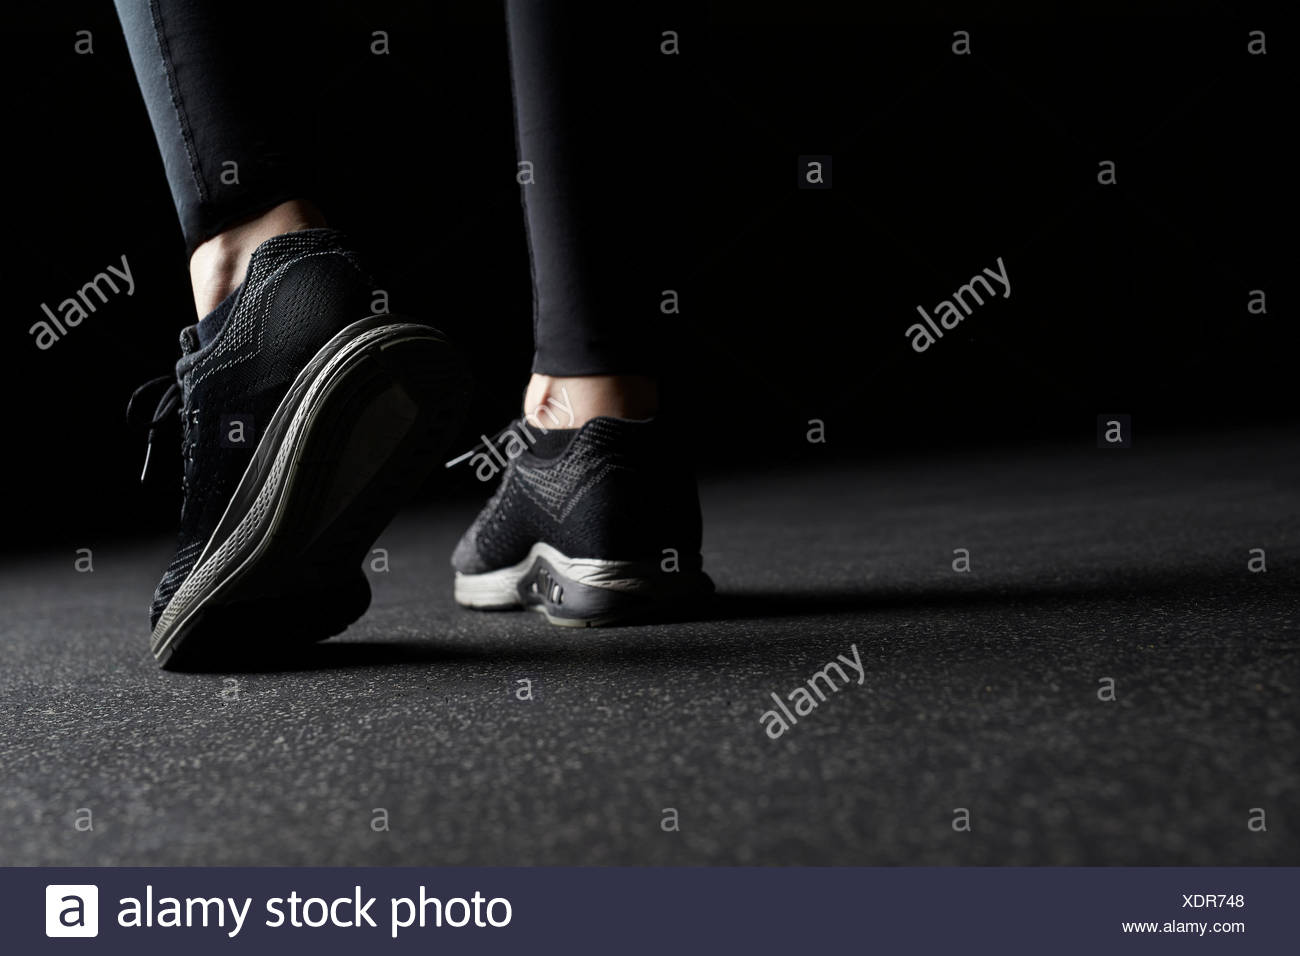 Close-up of Woman's legs in trainers at gym Stock Photo